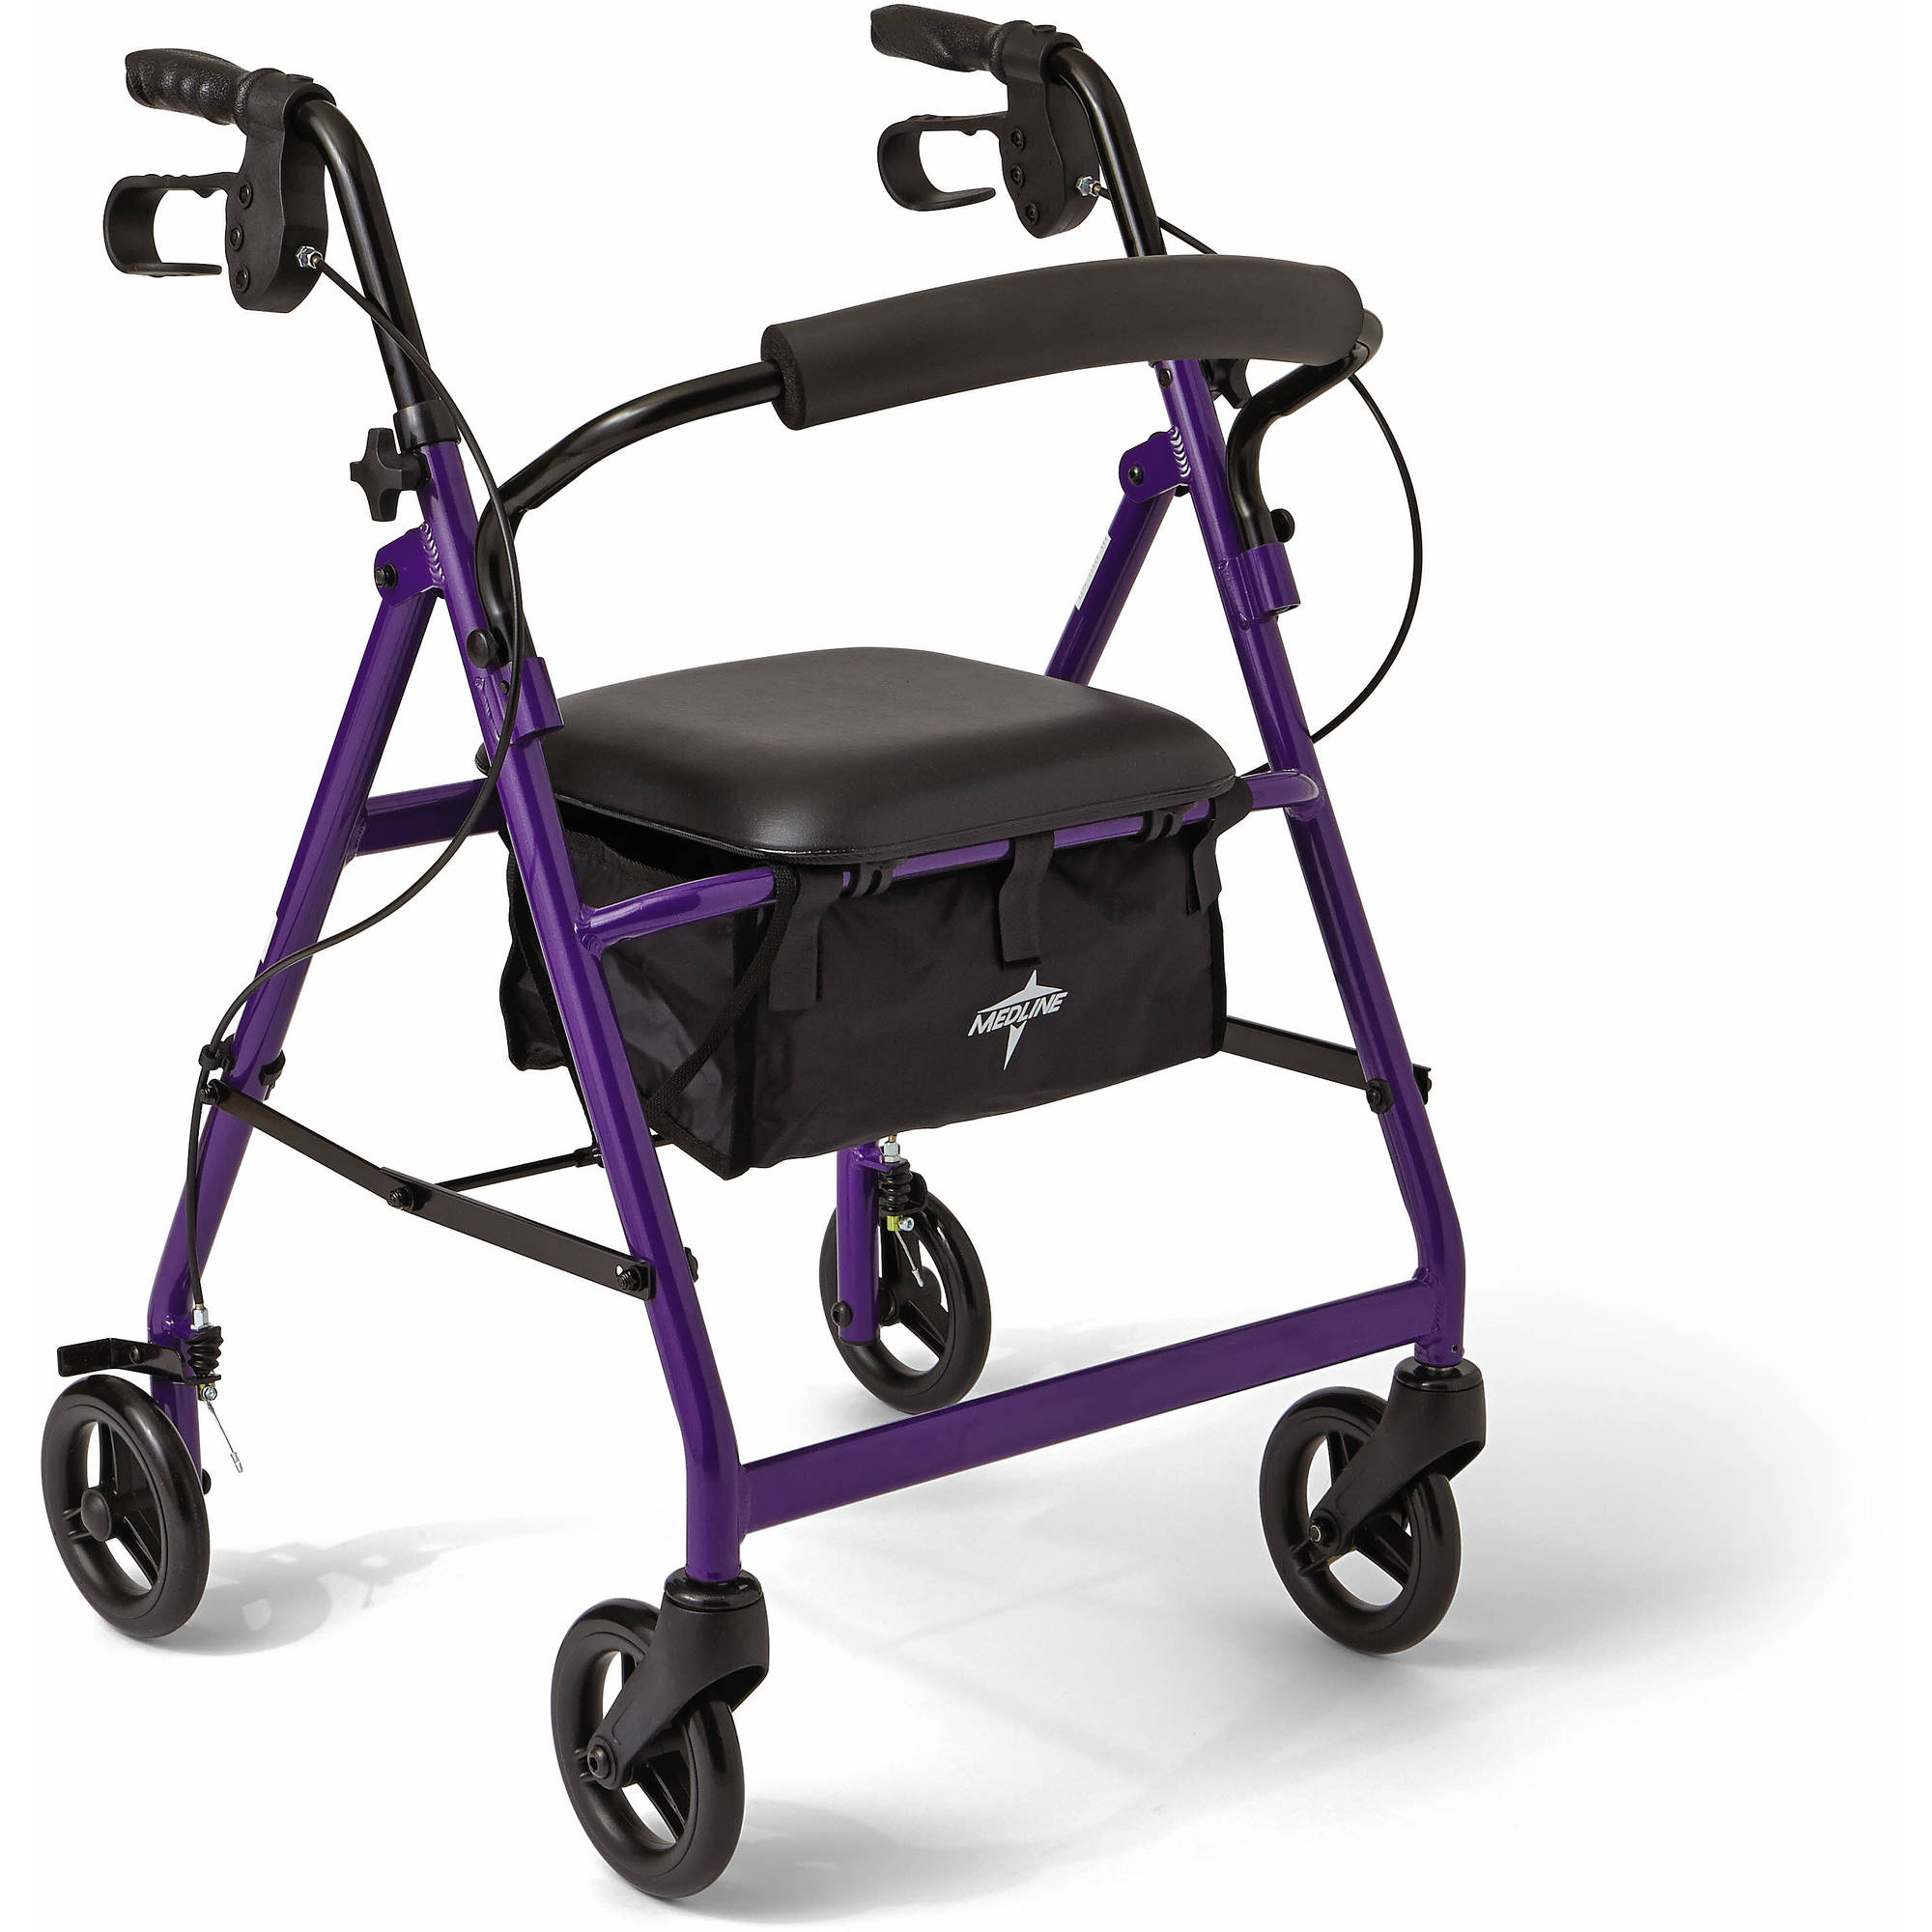 "Medline Aluminum Foldable Rollator Walker with 6"" Wheels, Purple"